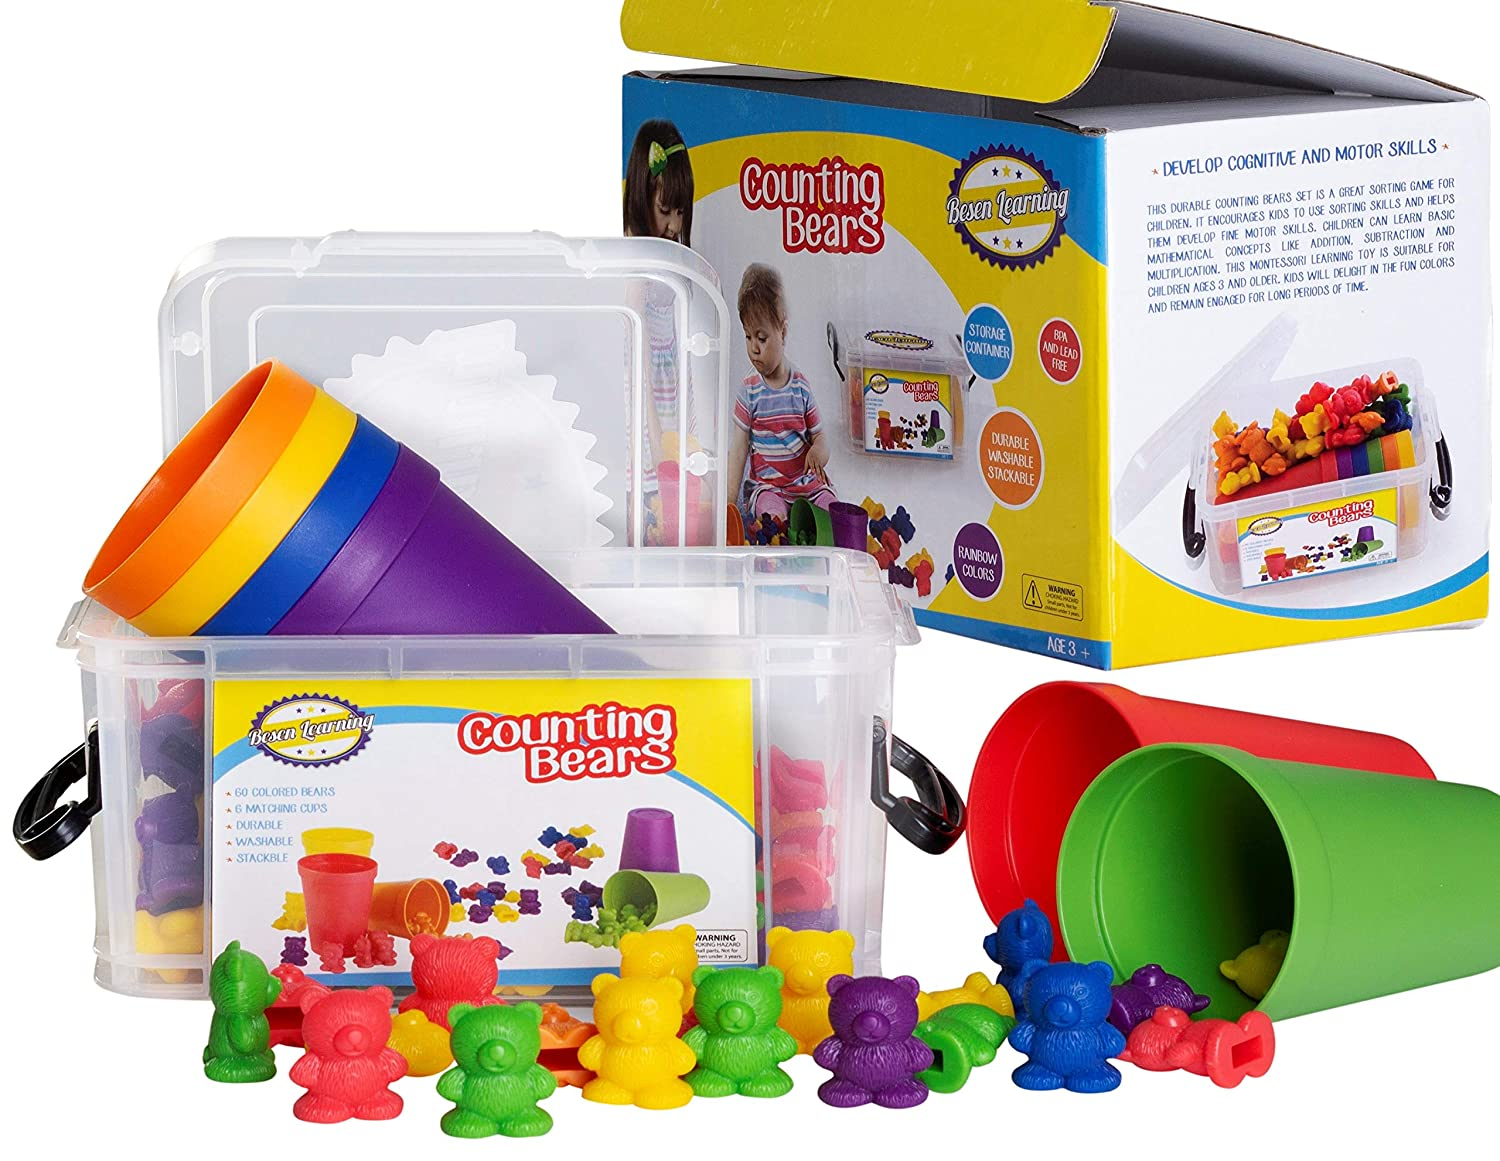 Counting Sorting Bears Toy Set with Matching Sorting Cups in Storage case – Best Fun Educational Toy for Kids Ages 3 and up for Learning STEM Education Mathematics Counting Sorting Toys